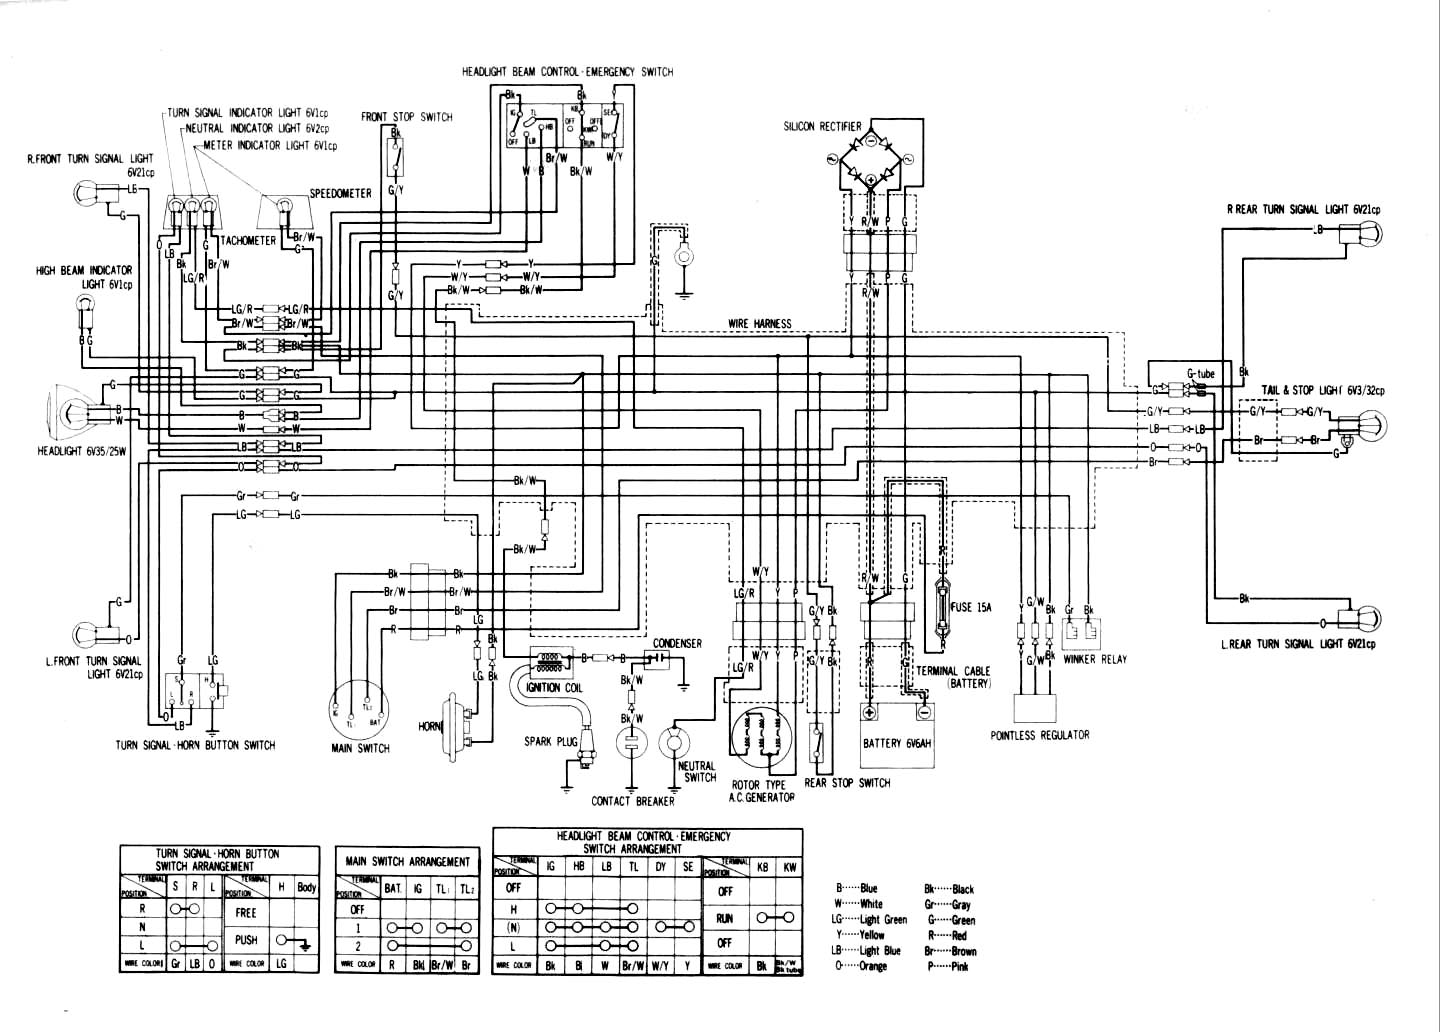 wiring diagrams rh oregonmotorcycleparts com Rare Honda Motorcycles Honda TL125 Trials